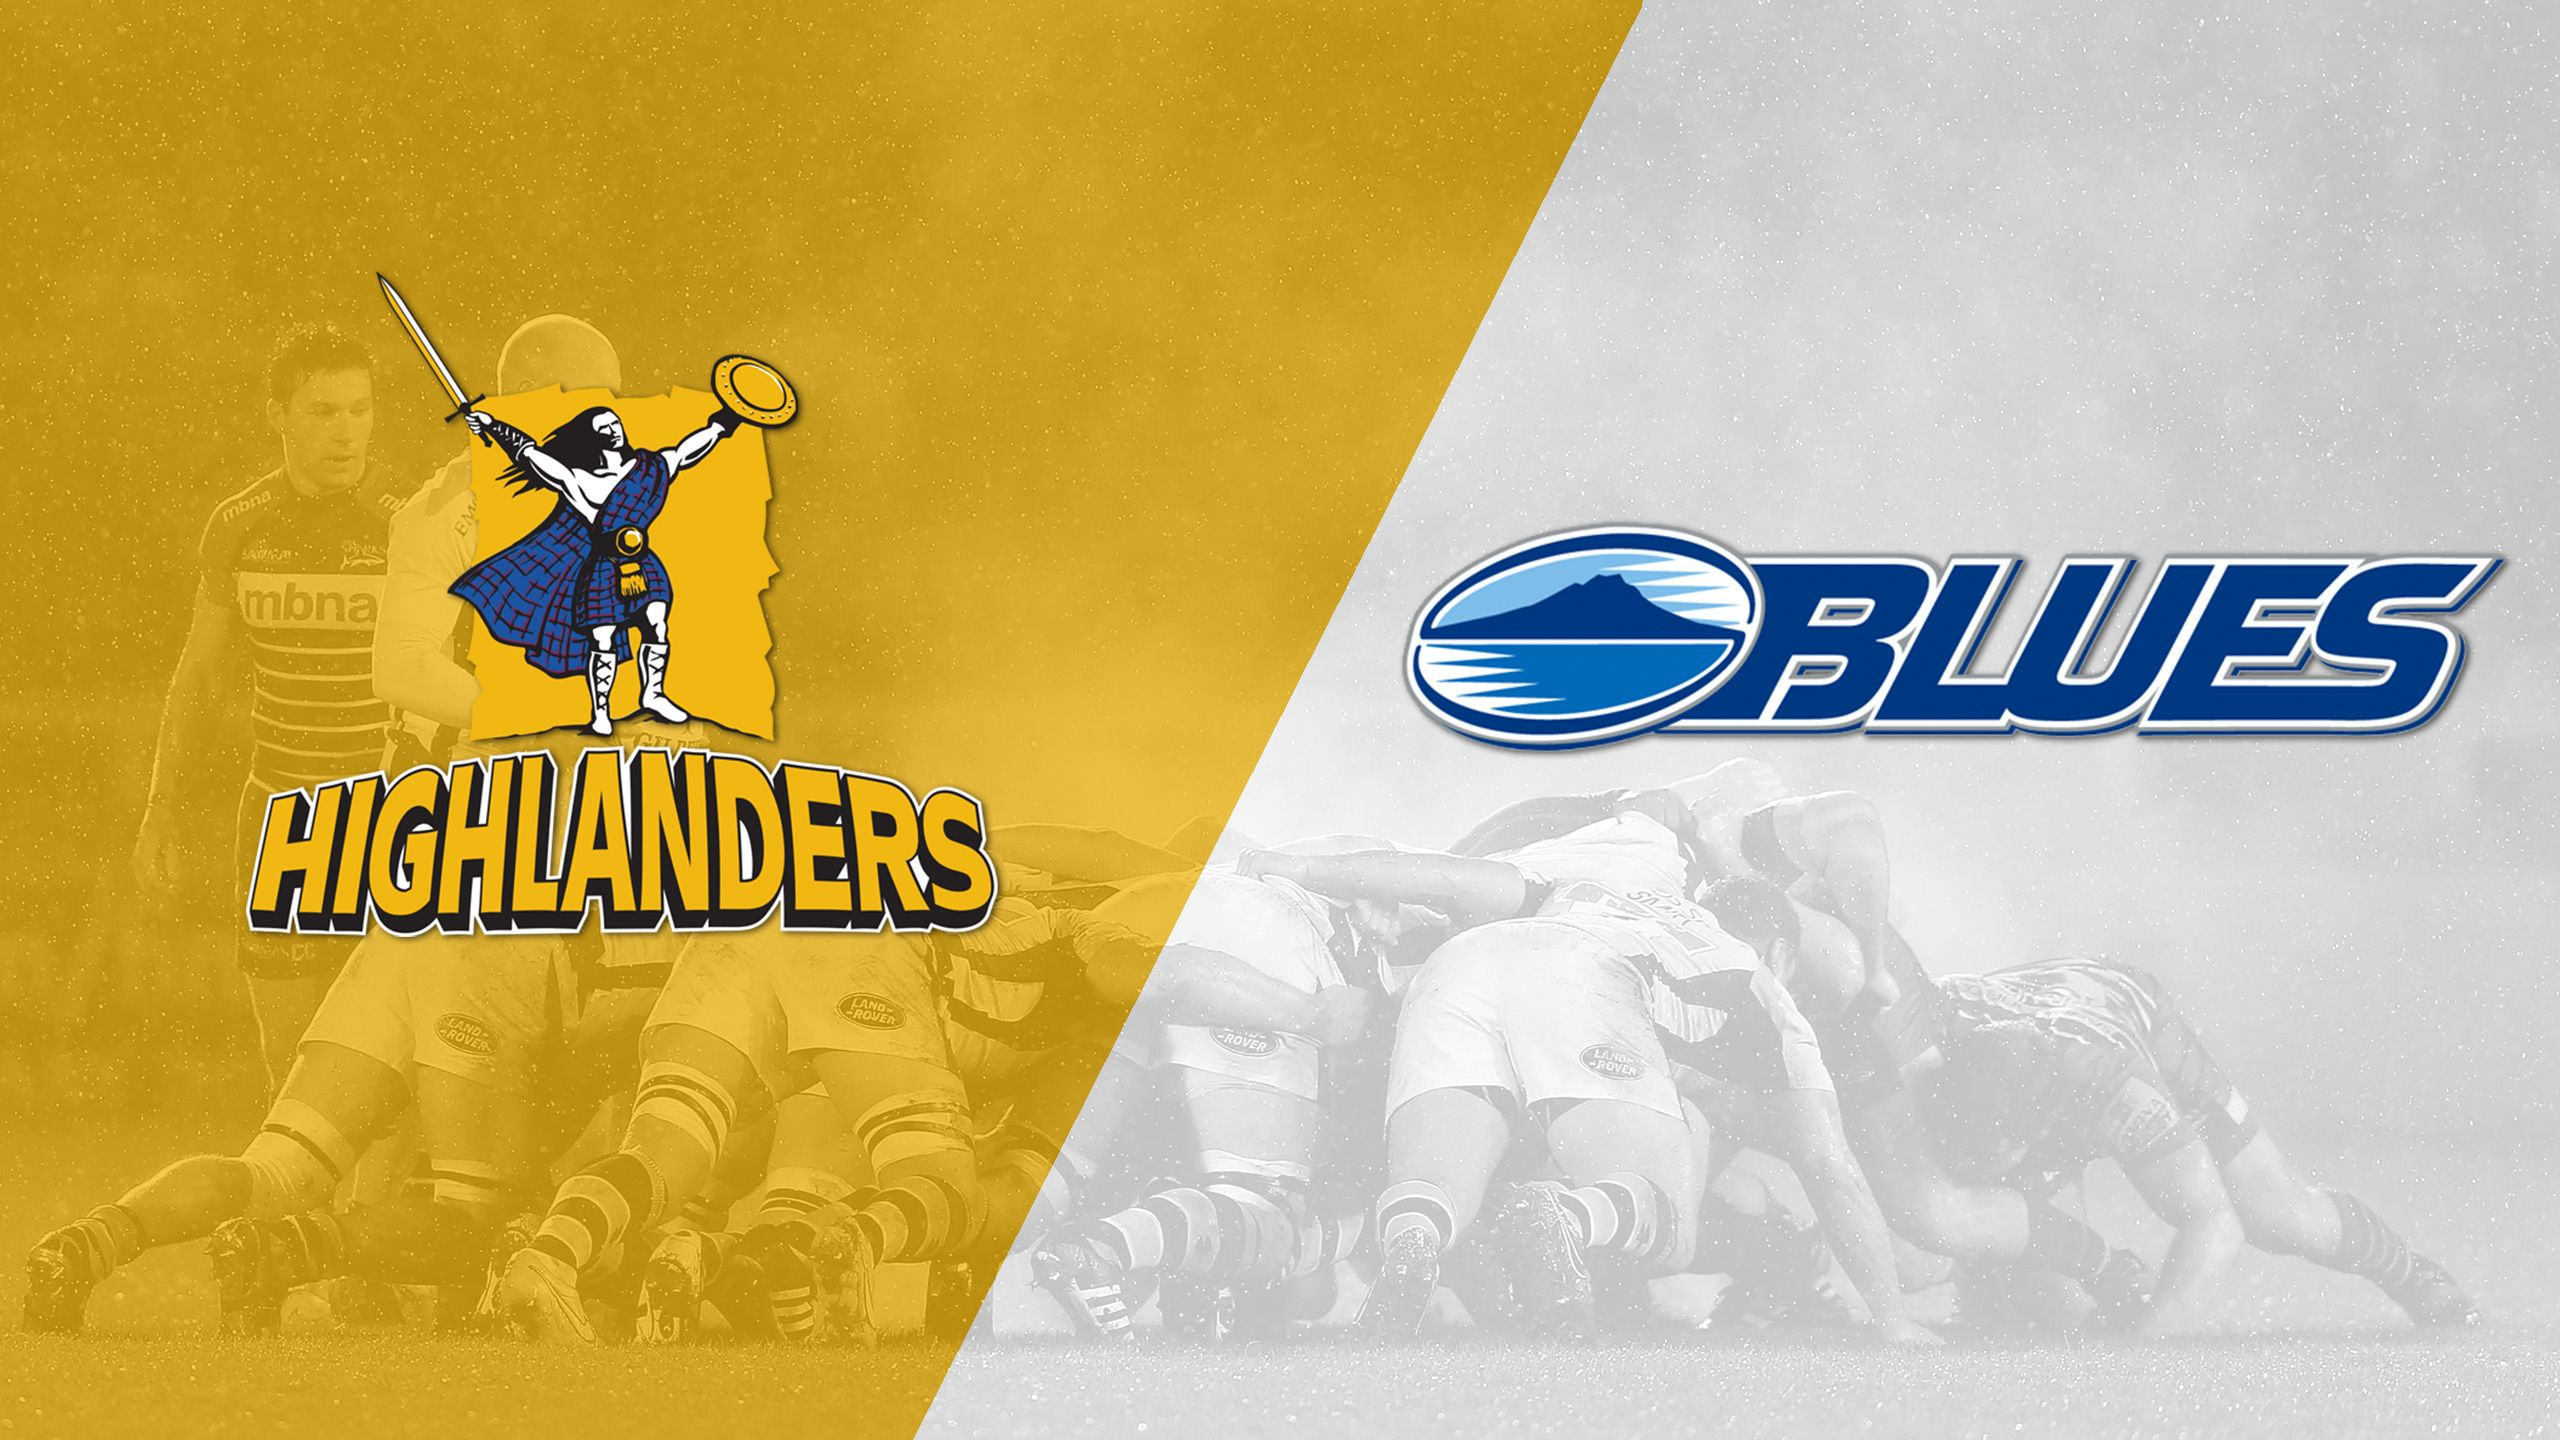 Highlanders vs. Blues (Round 2) (Super Rugby)